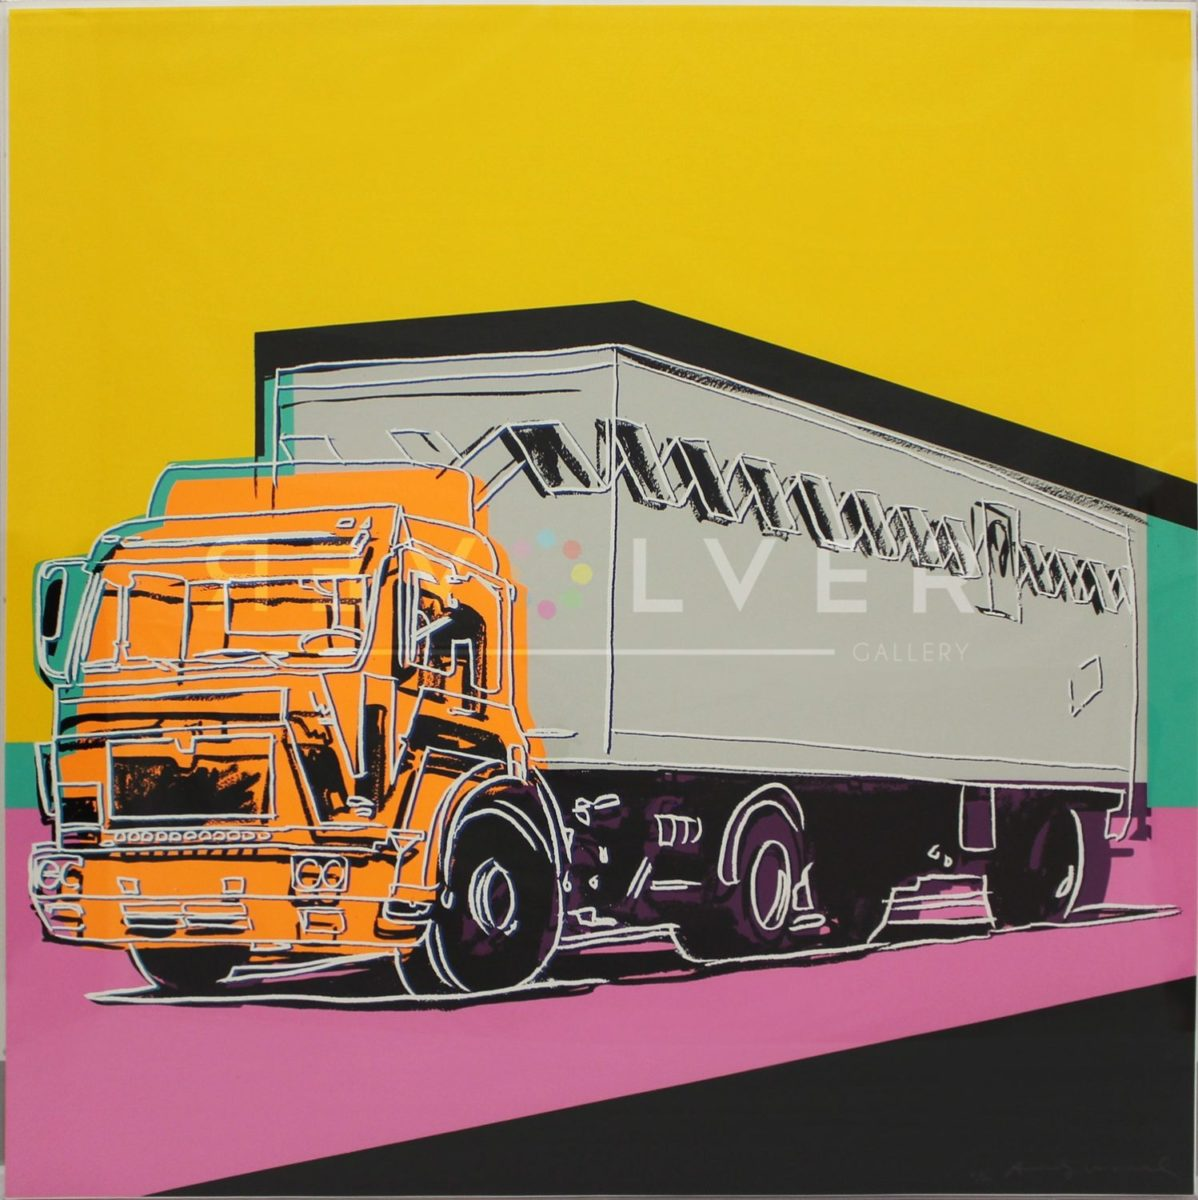 Andy Warhol Truck 367 screenprint, basic stock image with the revolver gallery watermark.